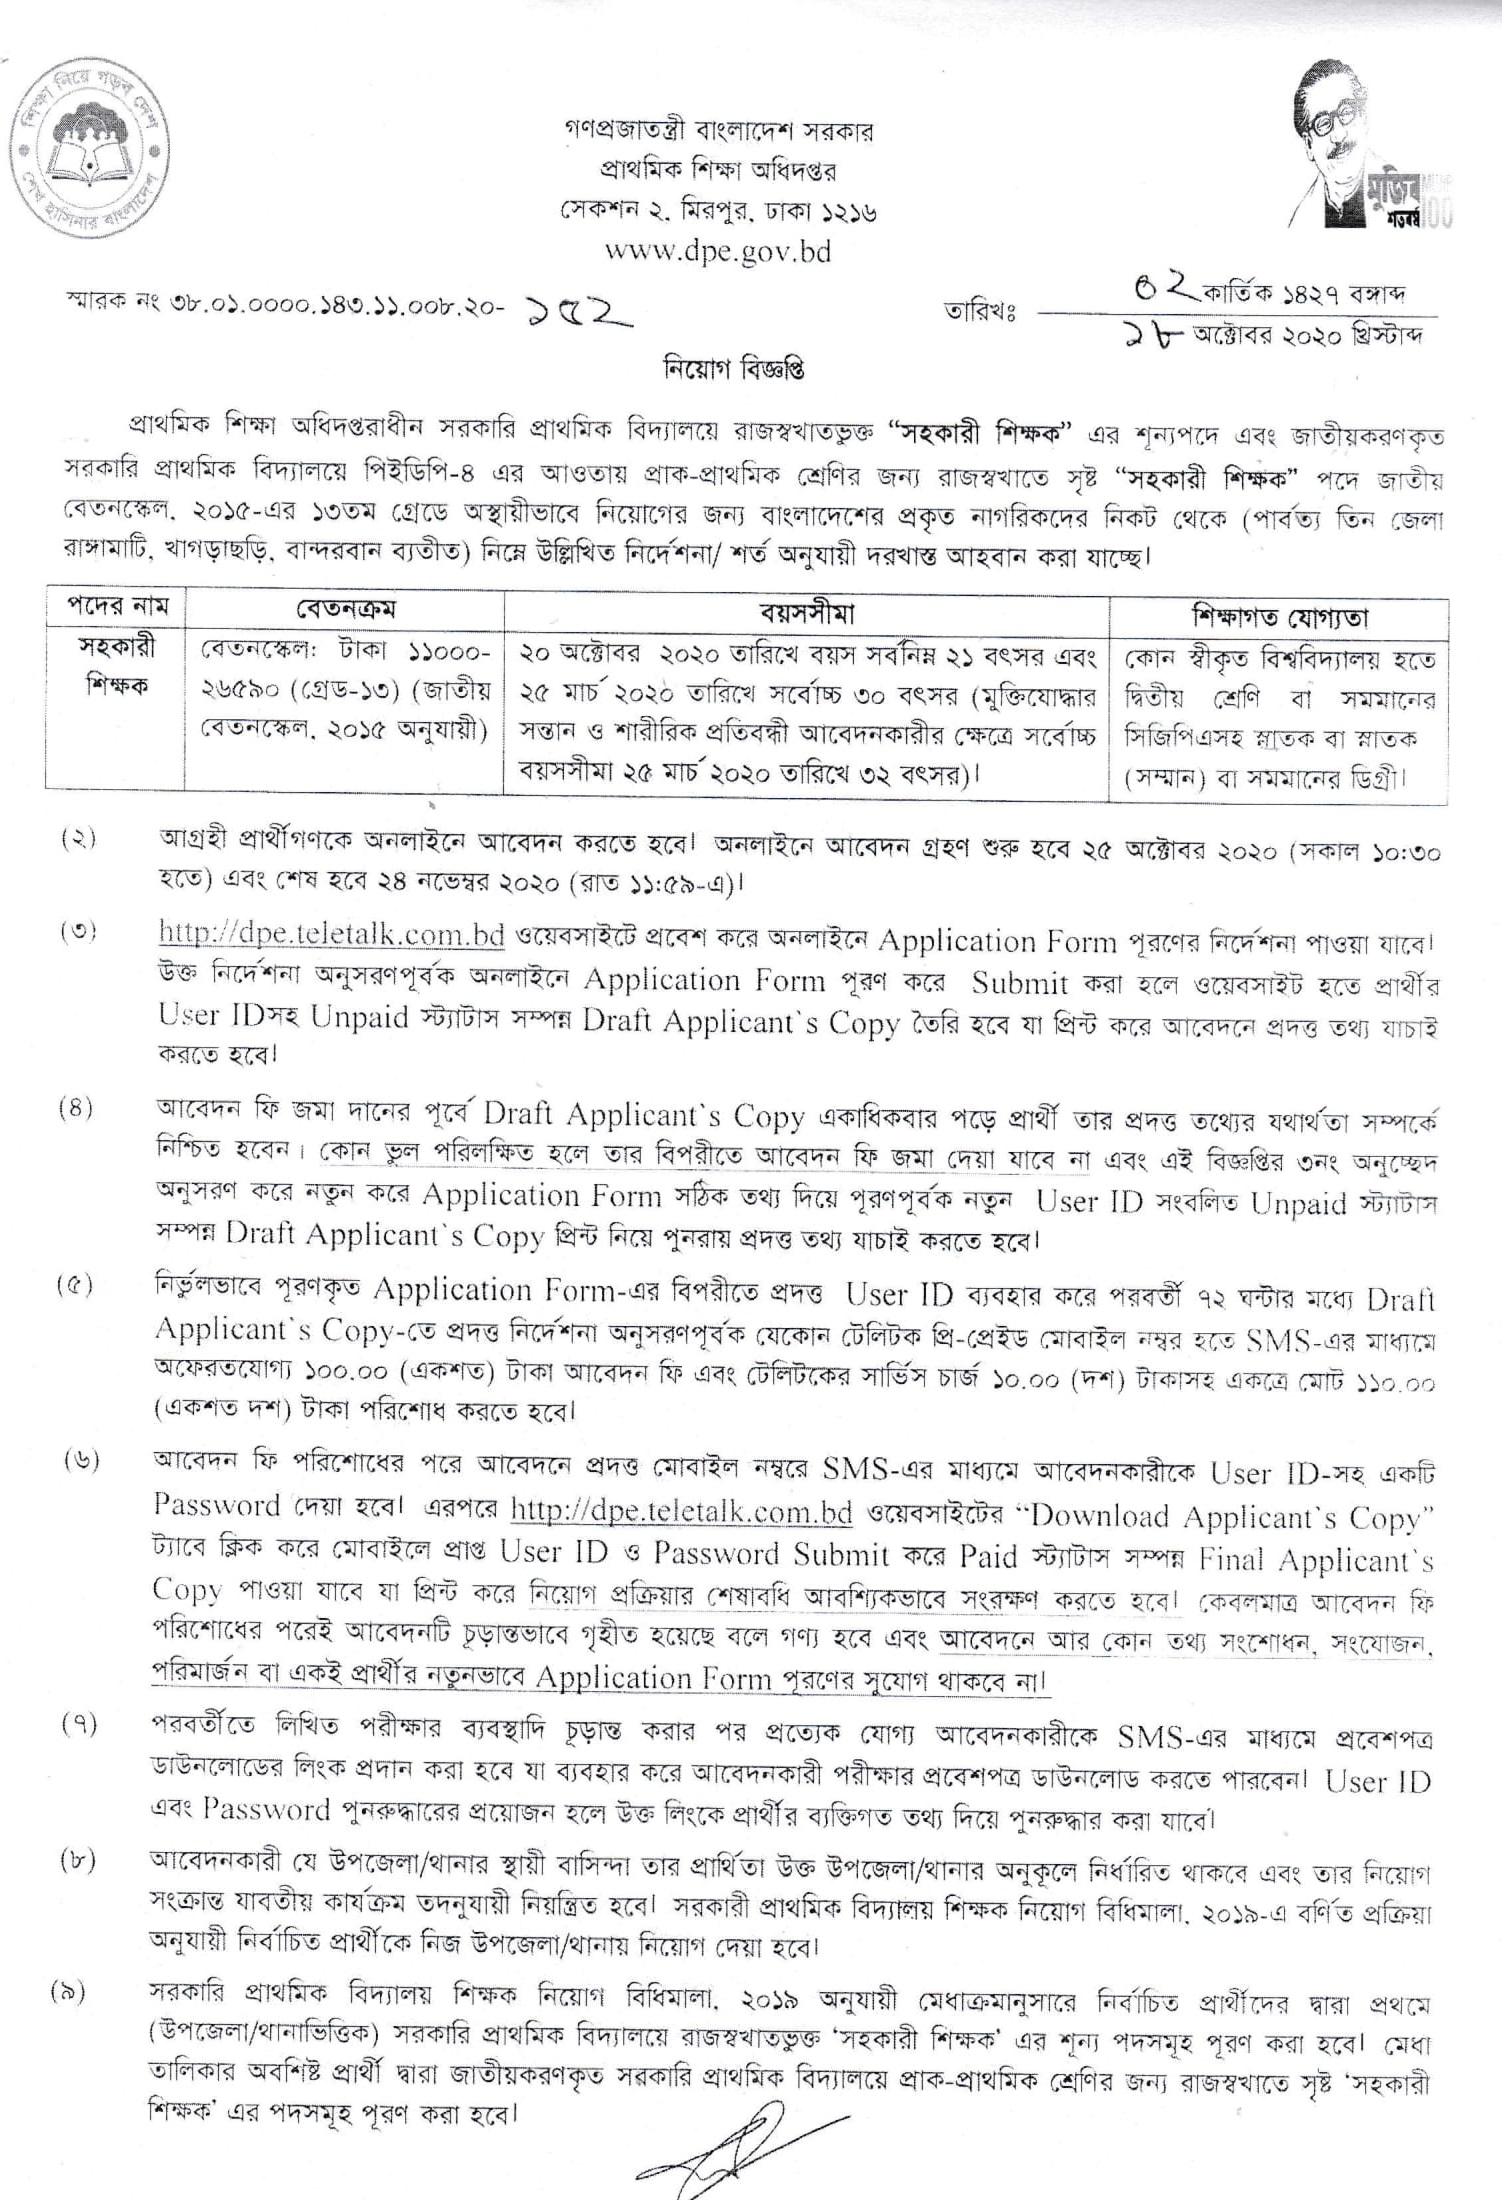 Primary Assistant Teacher DPE Job Circular 2020